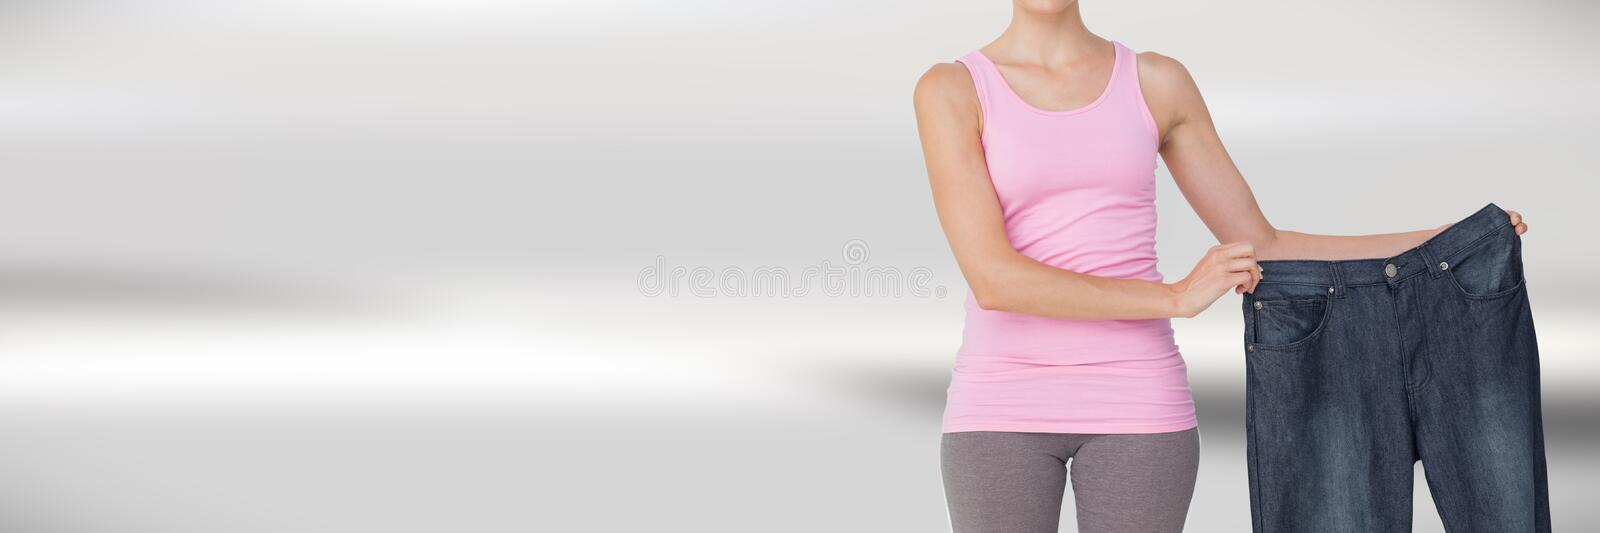 Slim healthy woman holding large trousers stock photo